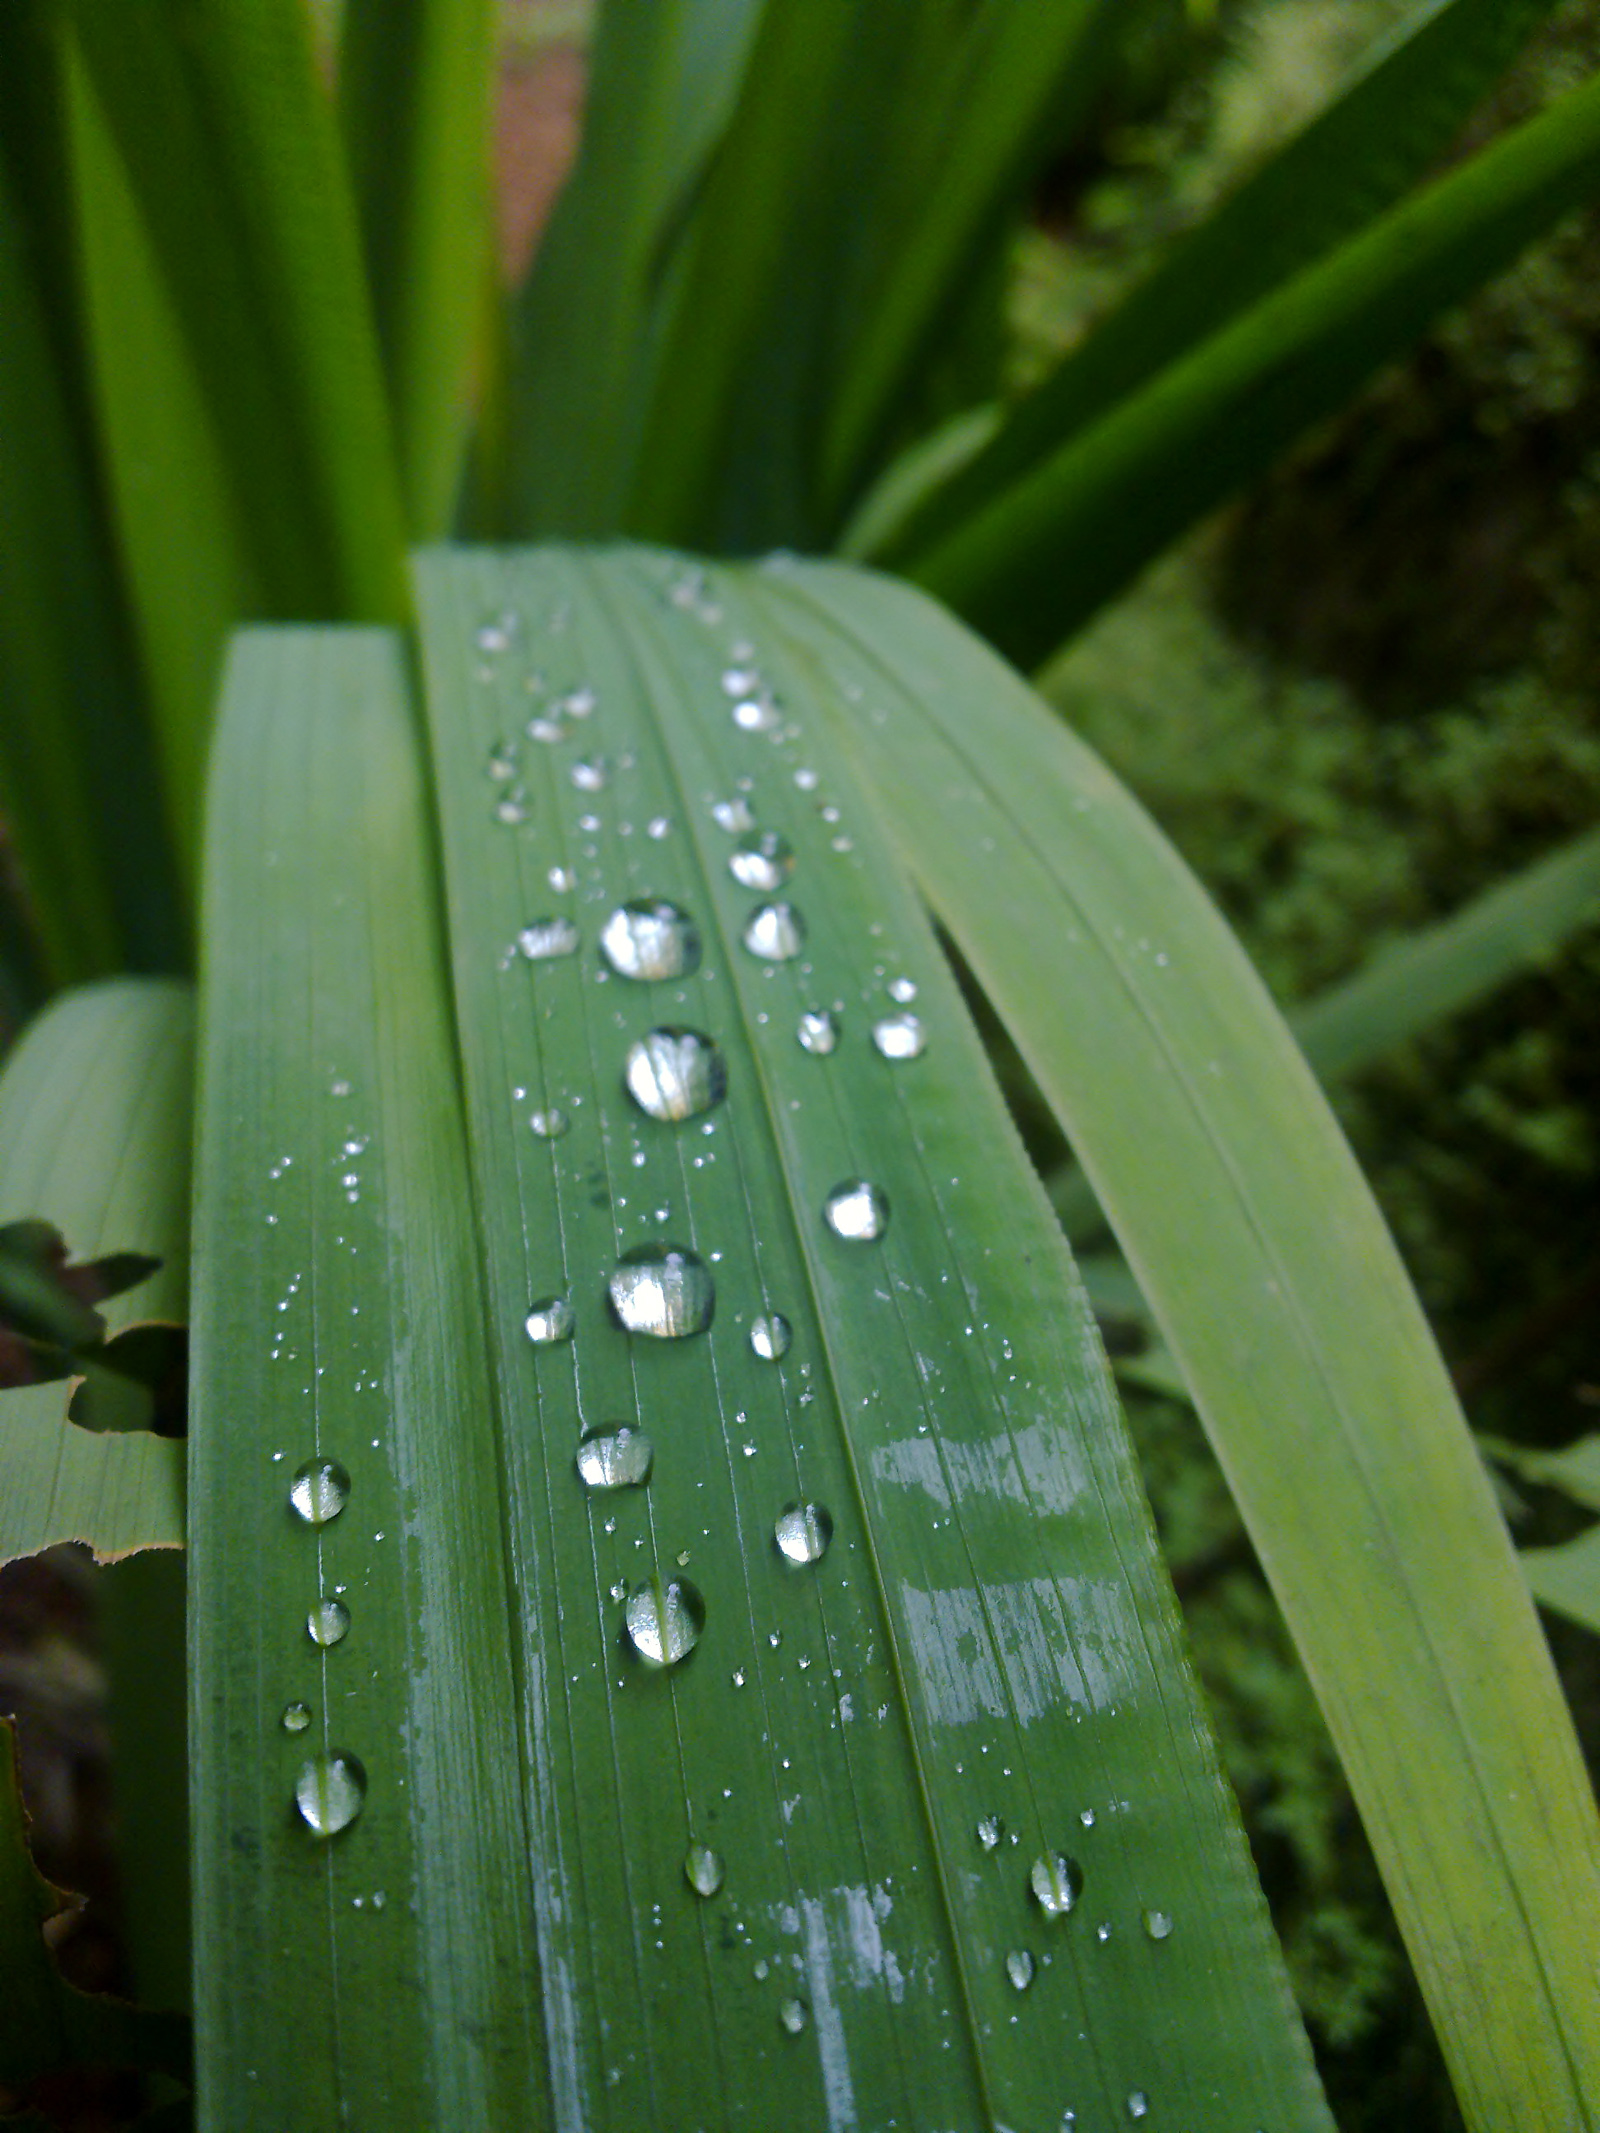 Water drops, Drops, Green, Leaf, Natural, HQ Photo